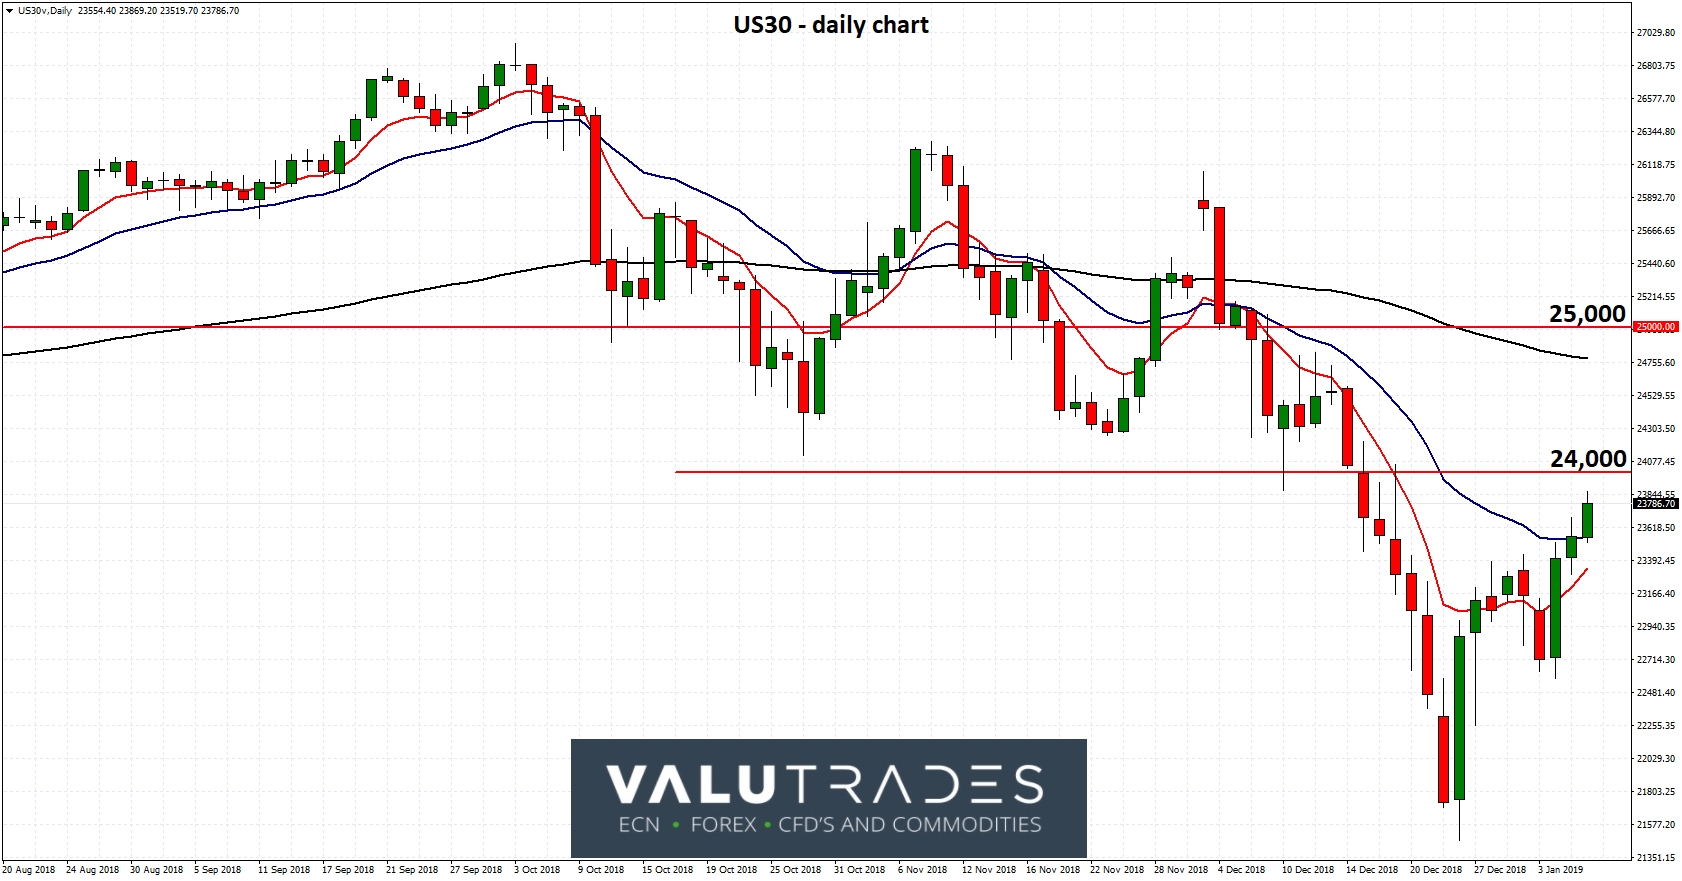 US30 - Rallies Towards Key 24000 Level as Fed Expected to Pause